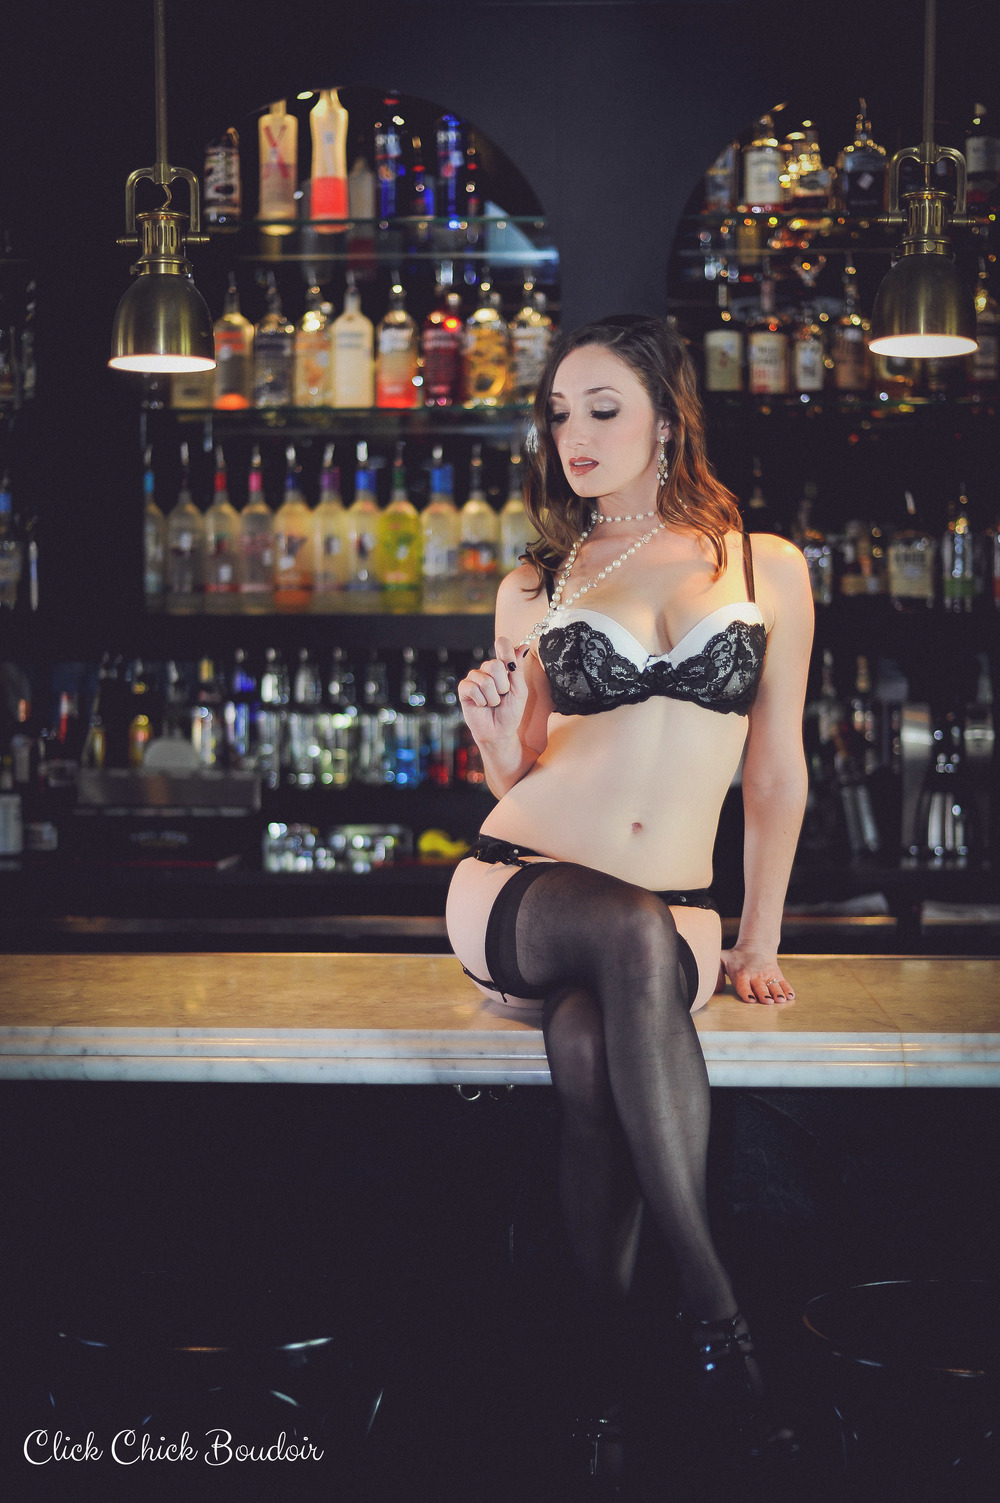 austinboudoir_bar-8lo.jpg